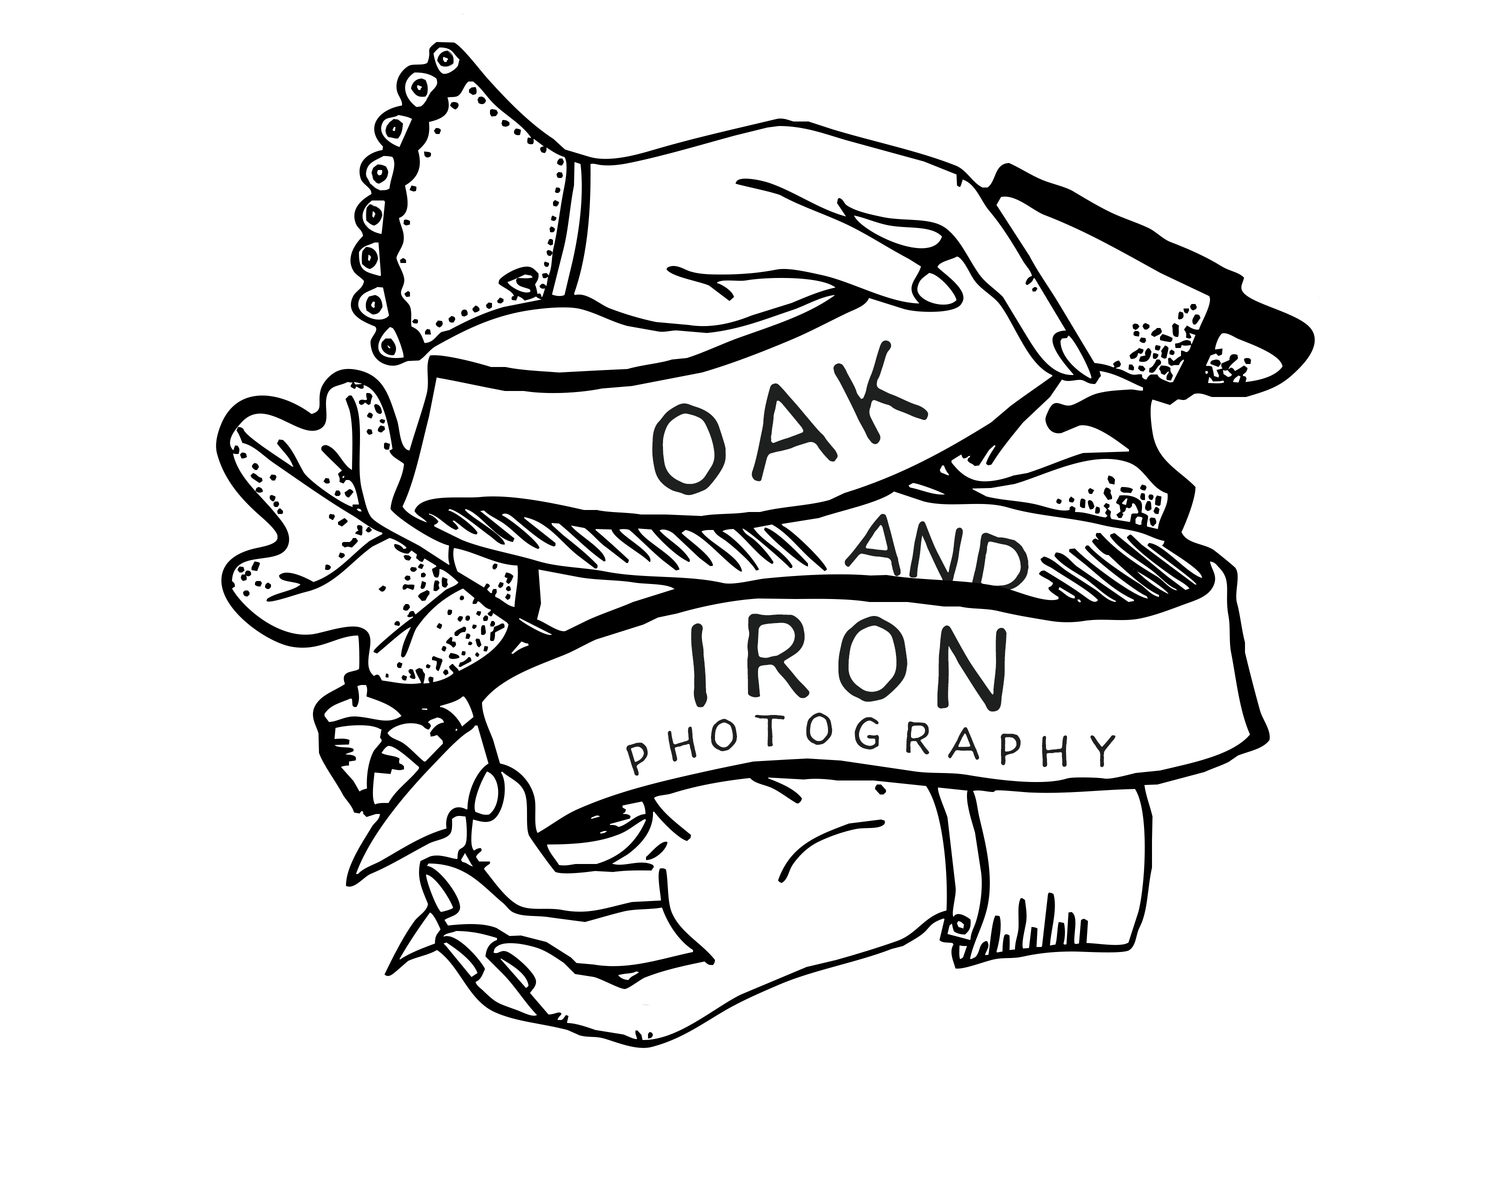 Oak and Iron Photography